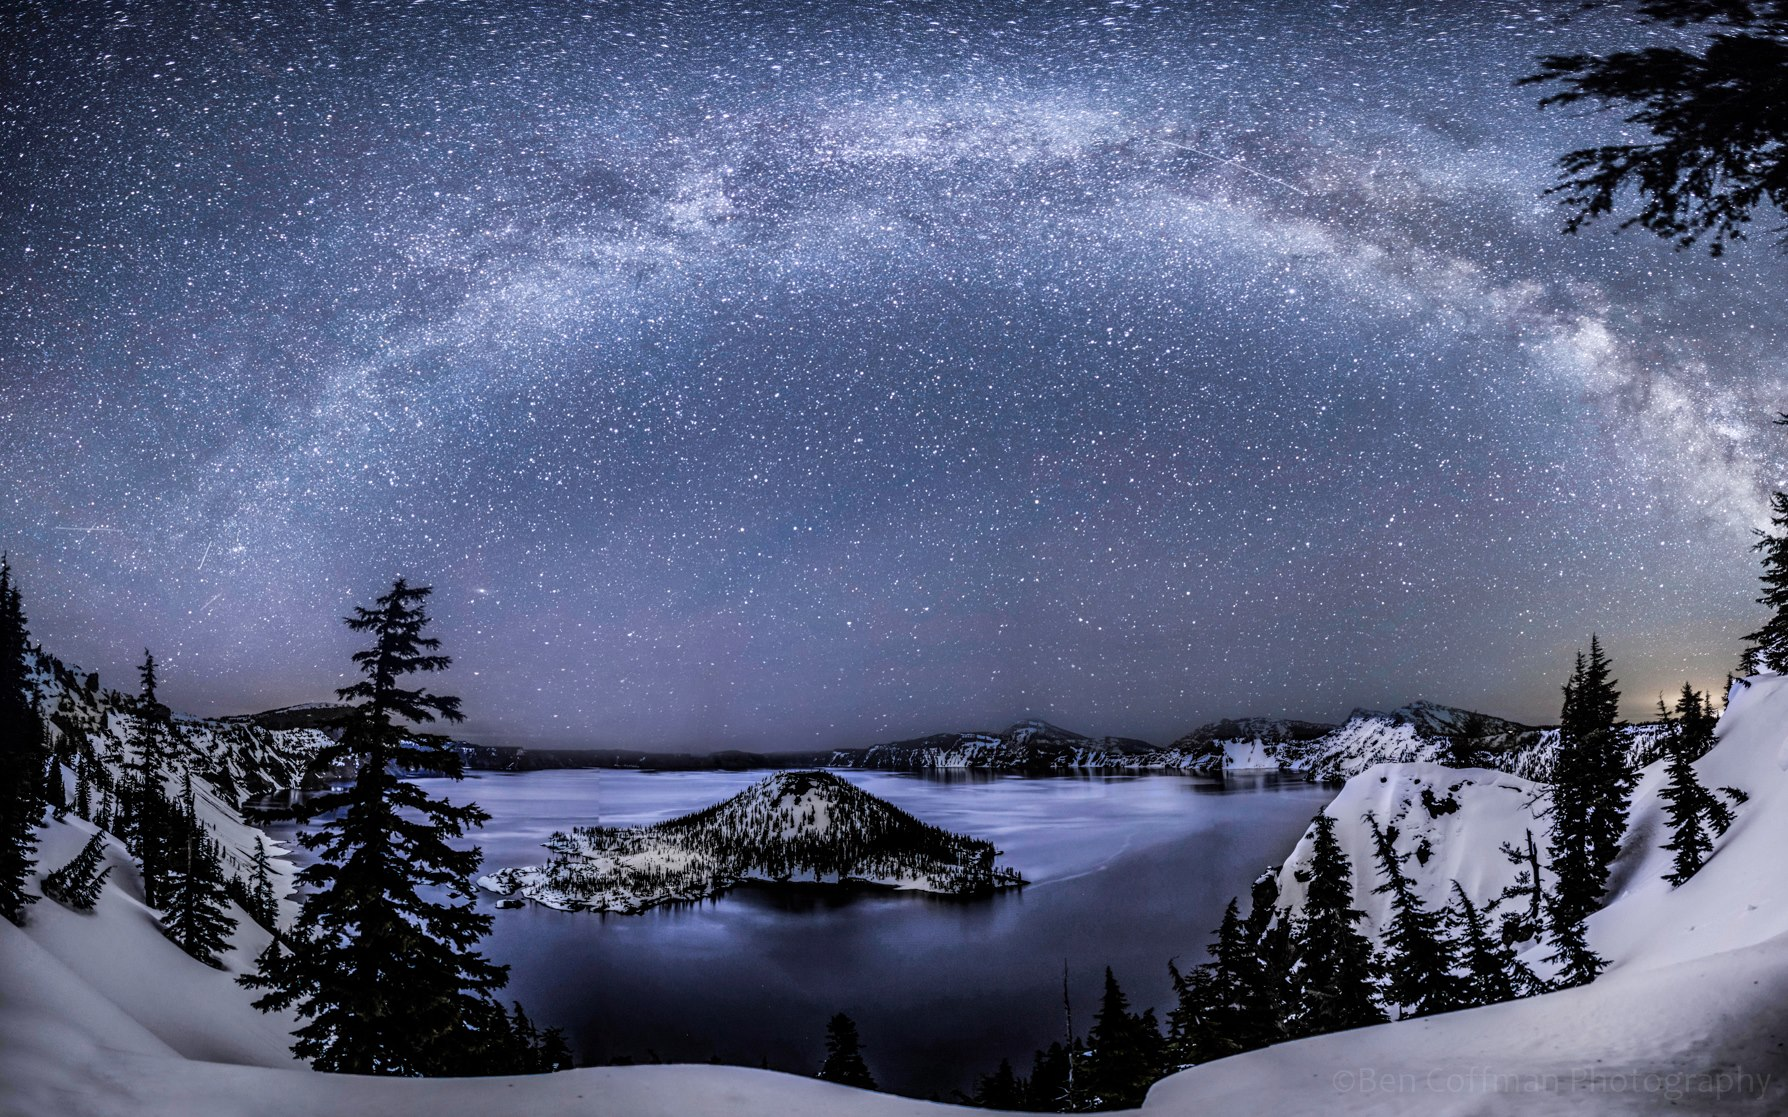 Milky Way over Crater Lake captured by our friend Ben Coffman Photography during the Lyrid meteor shower.  View larger.  This photo was taken last Saturday night, April 20.  Thanks Ben!  Visit Ben Coffman Photography on Facebook.